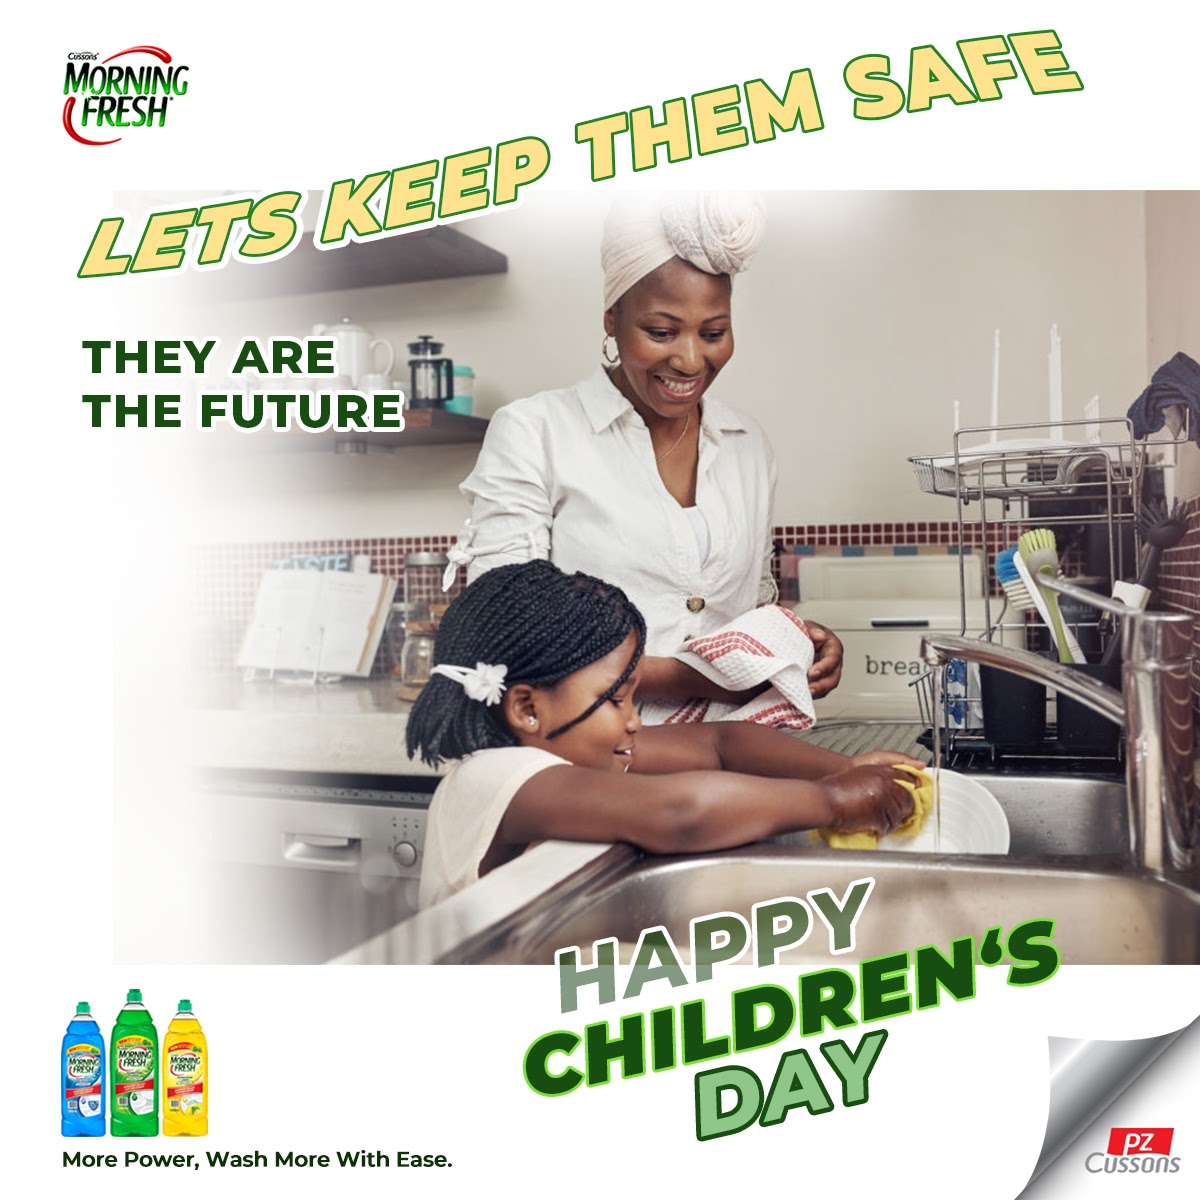 Our kids mean the world to us.  Let's keep them safe and teach them the importance of handwashing and proper hygiene habits, because they are our future Happy Children's Day! #childrensday #happymoments #MorningFresh #dishwashing #squeakyclean #kitchen #socialdistancing #staysafepic.twitter.com/LpR7tKyJ57